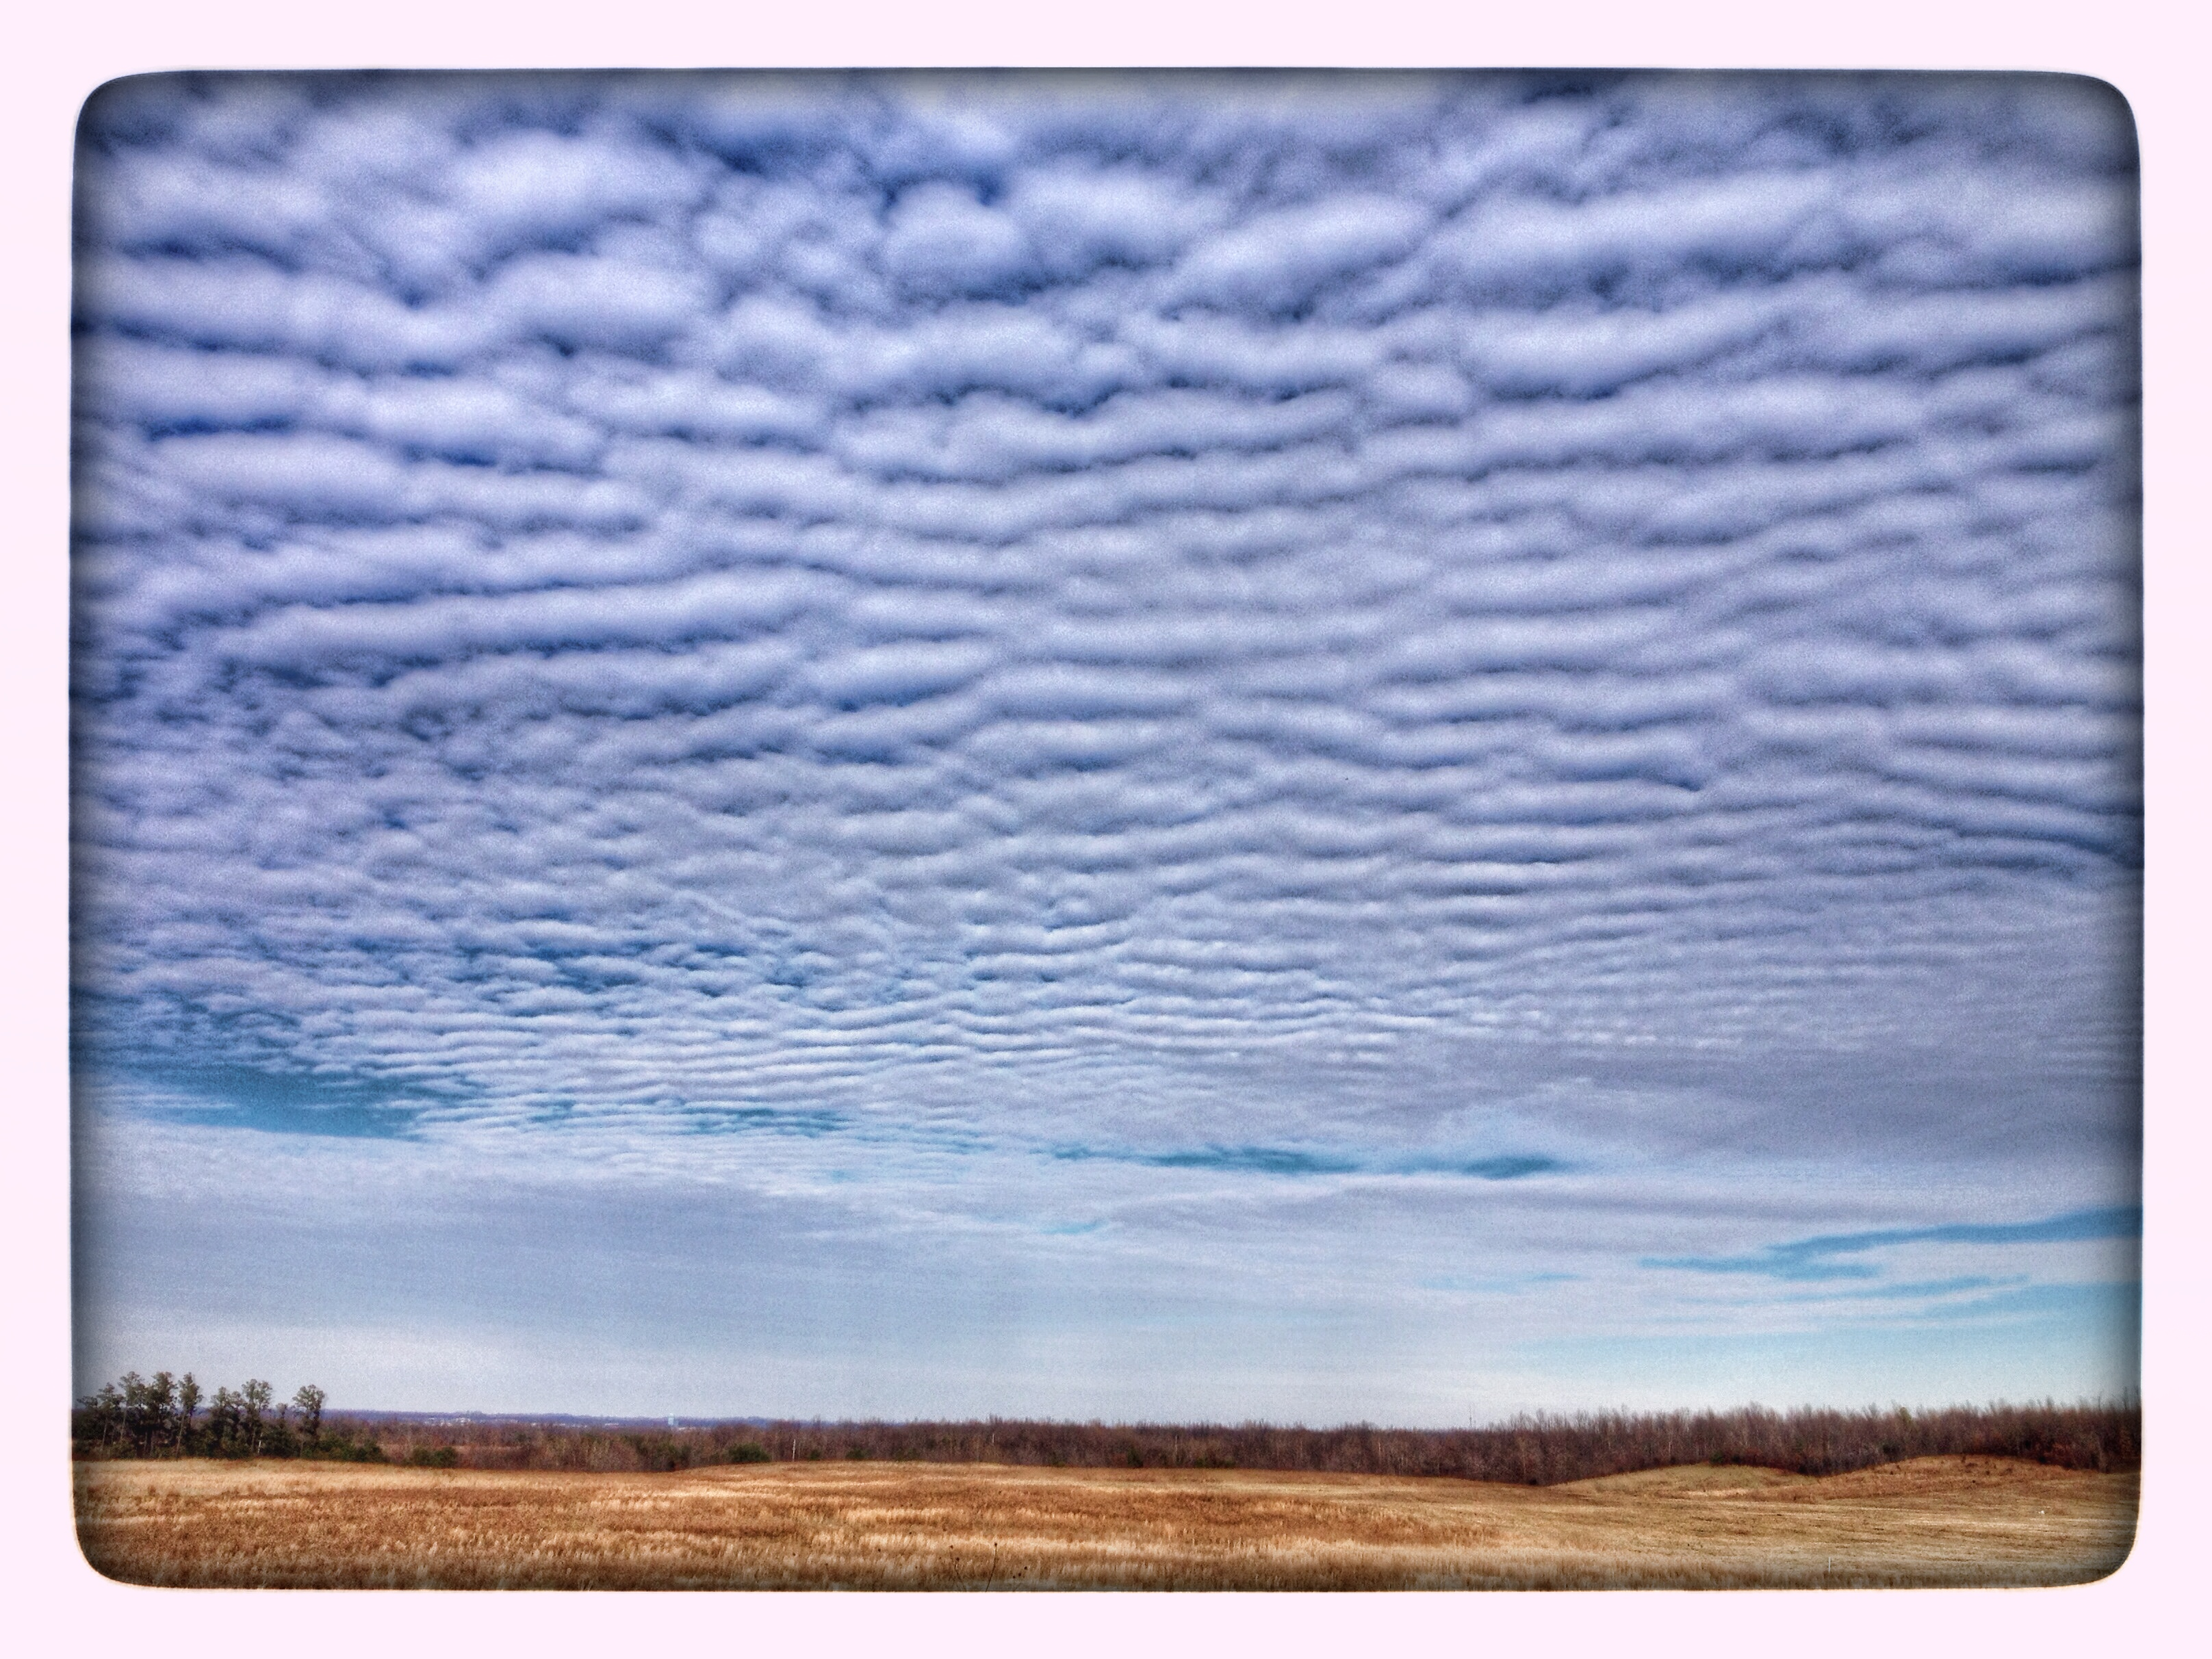 January 1, 2014 – The Clouds